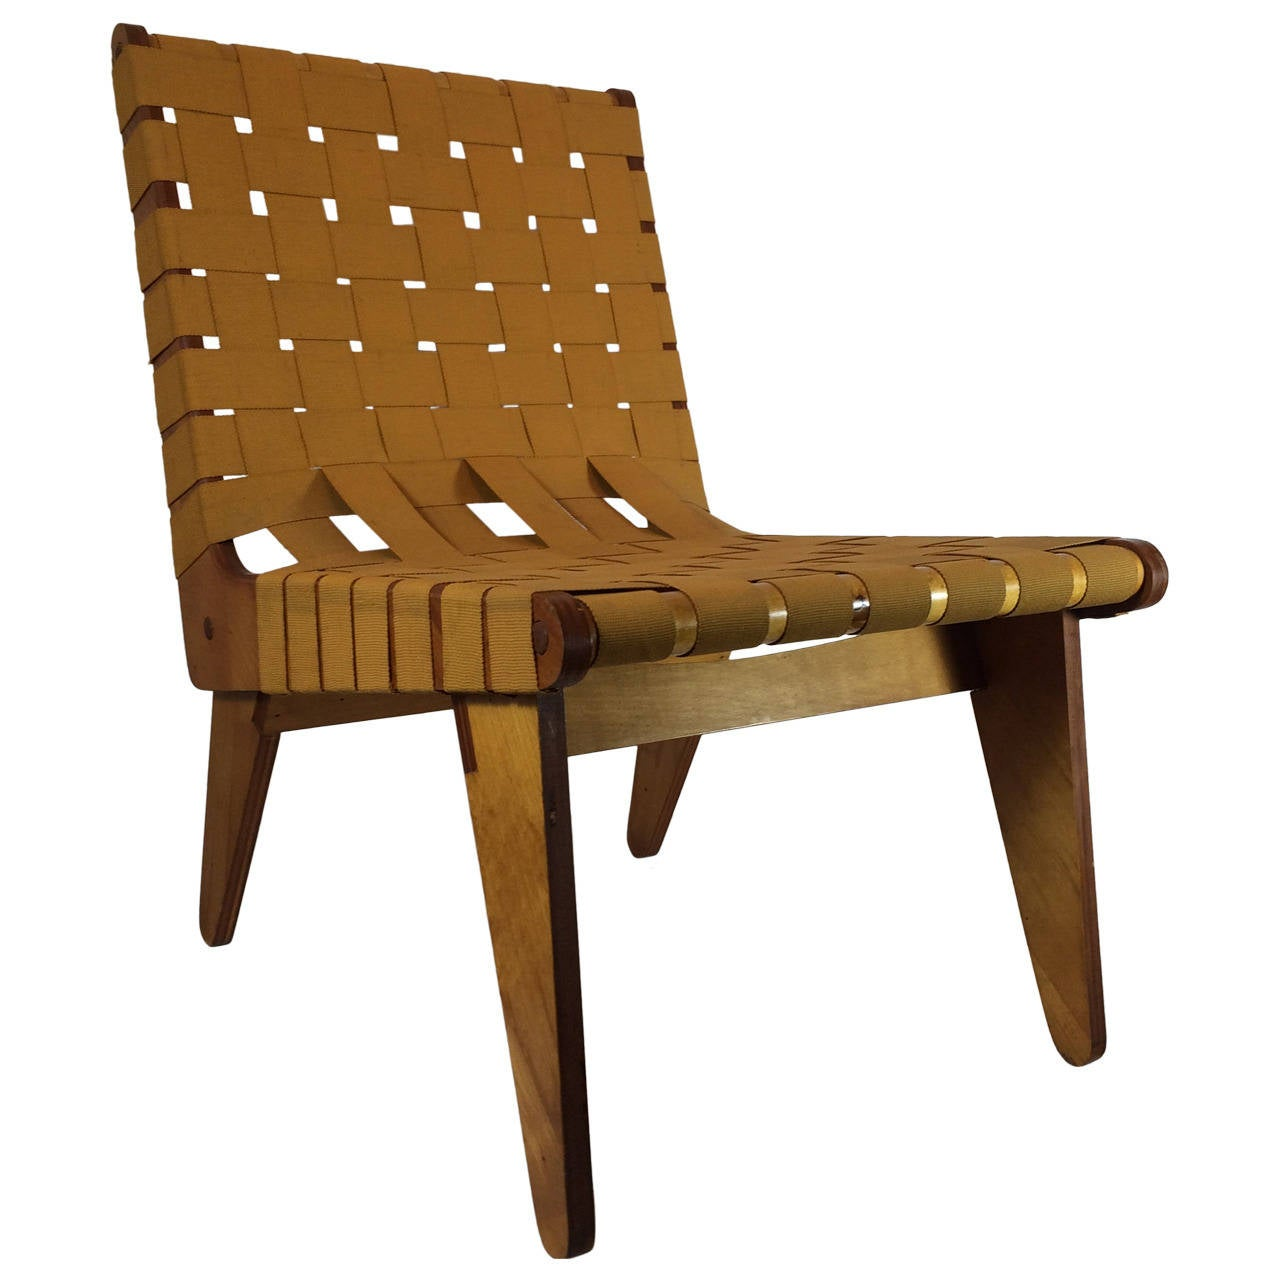 1949 Klaus Grabe Handmade Lounge Chair